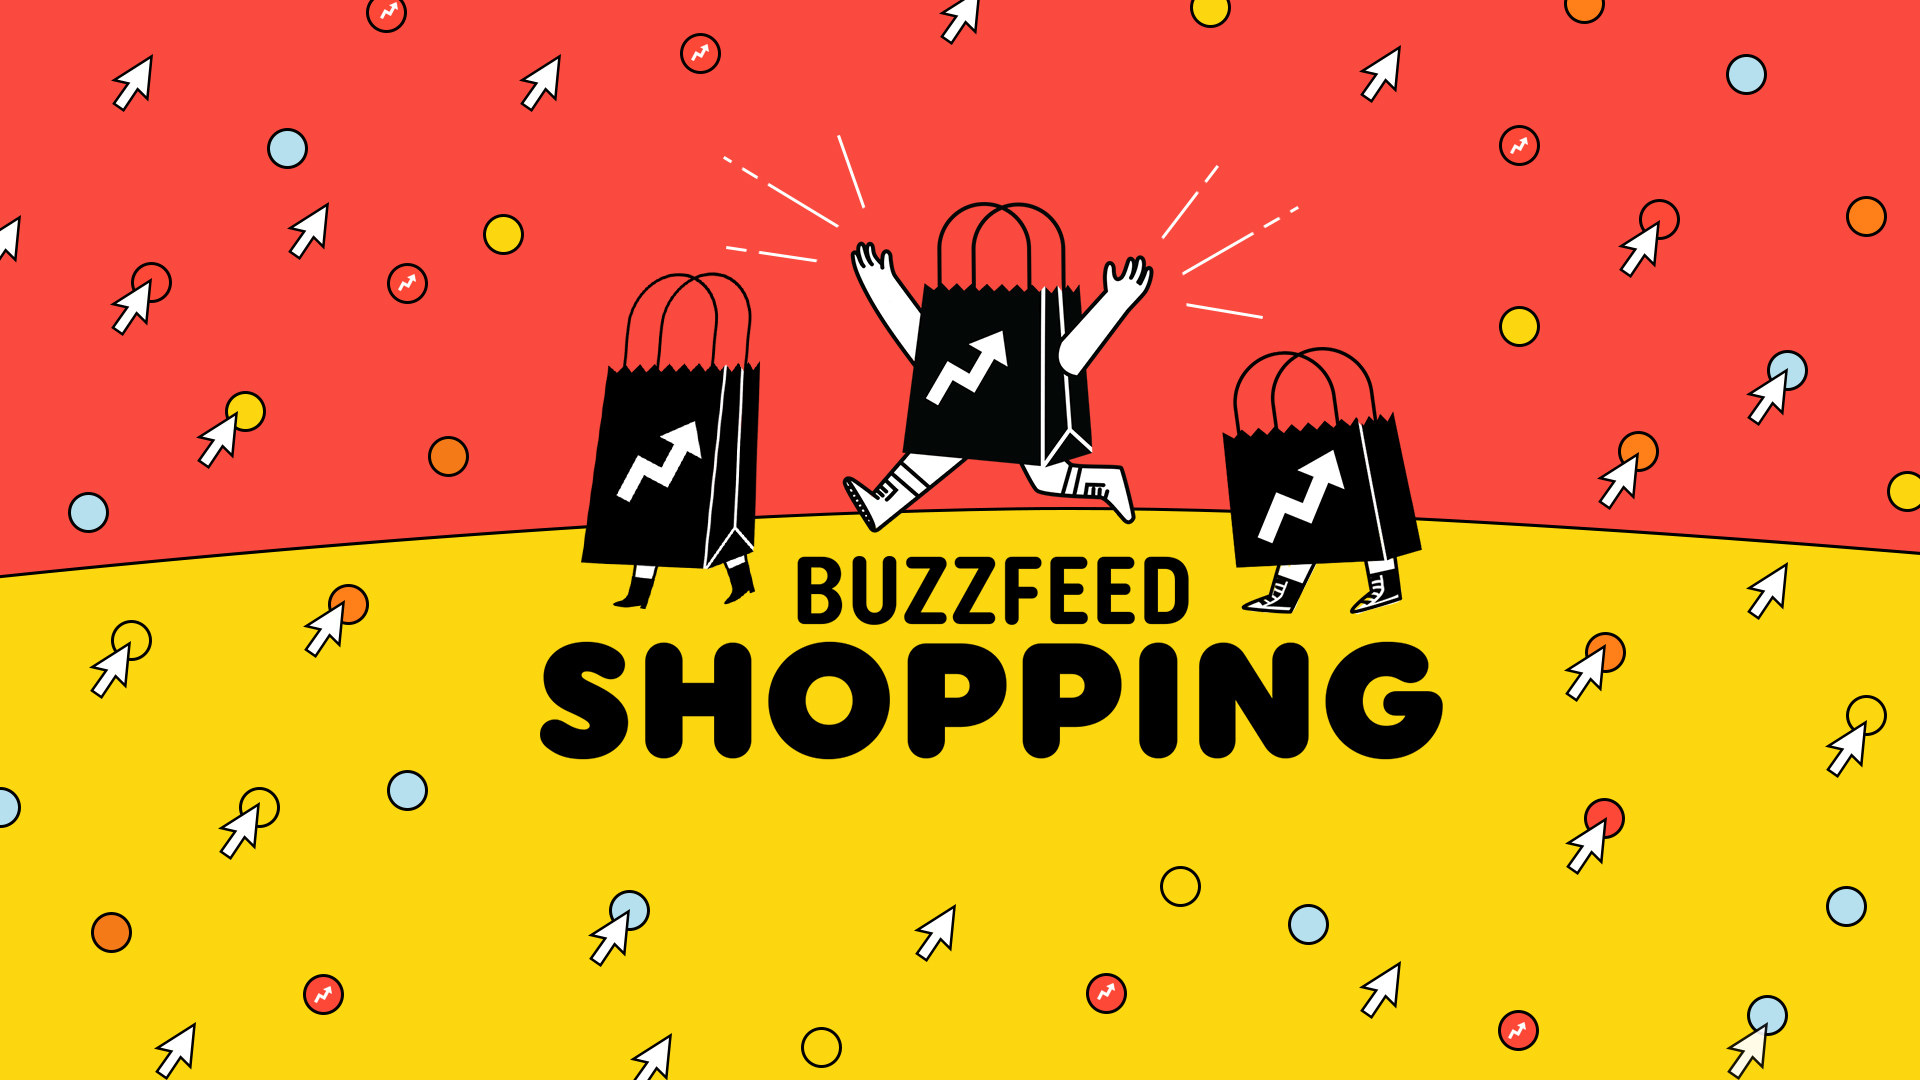 BuzzFeed Shopping logo with cartoon shopping bags on a red and yellow background